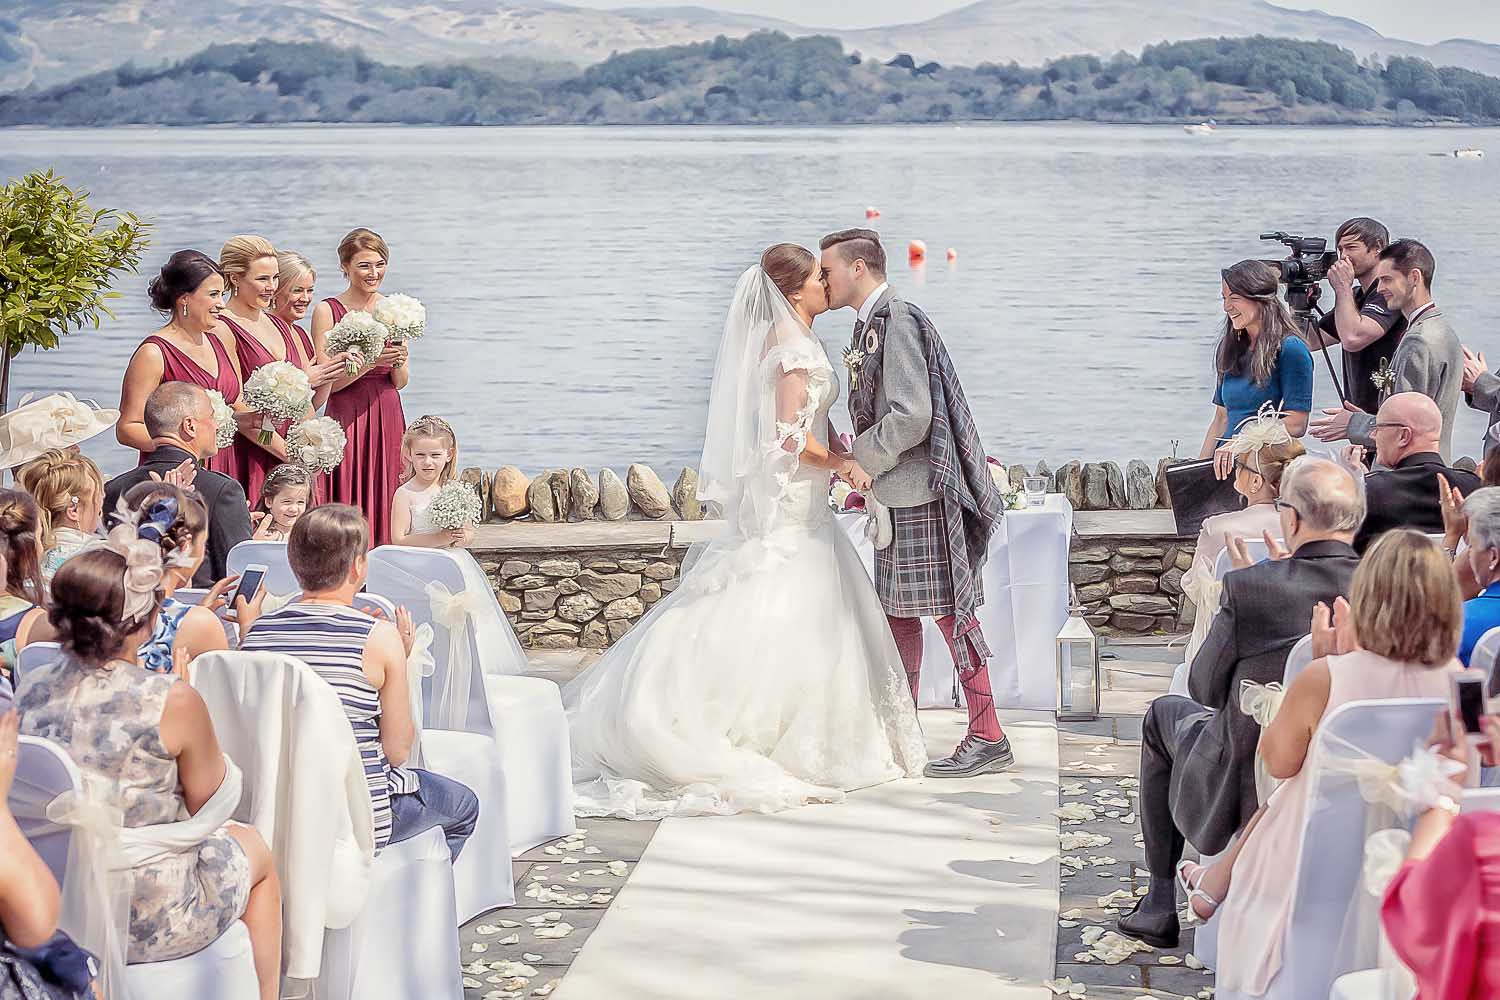 If you are looking to add a traditional Scottish Ceilidh to your wedding, Skythorn are a great option as they do classic covers and ceilidh tunes!